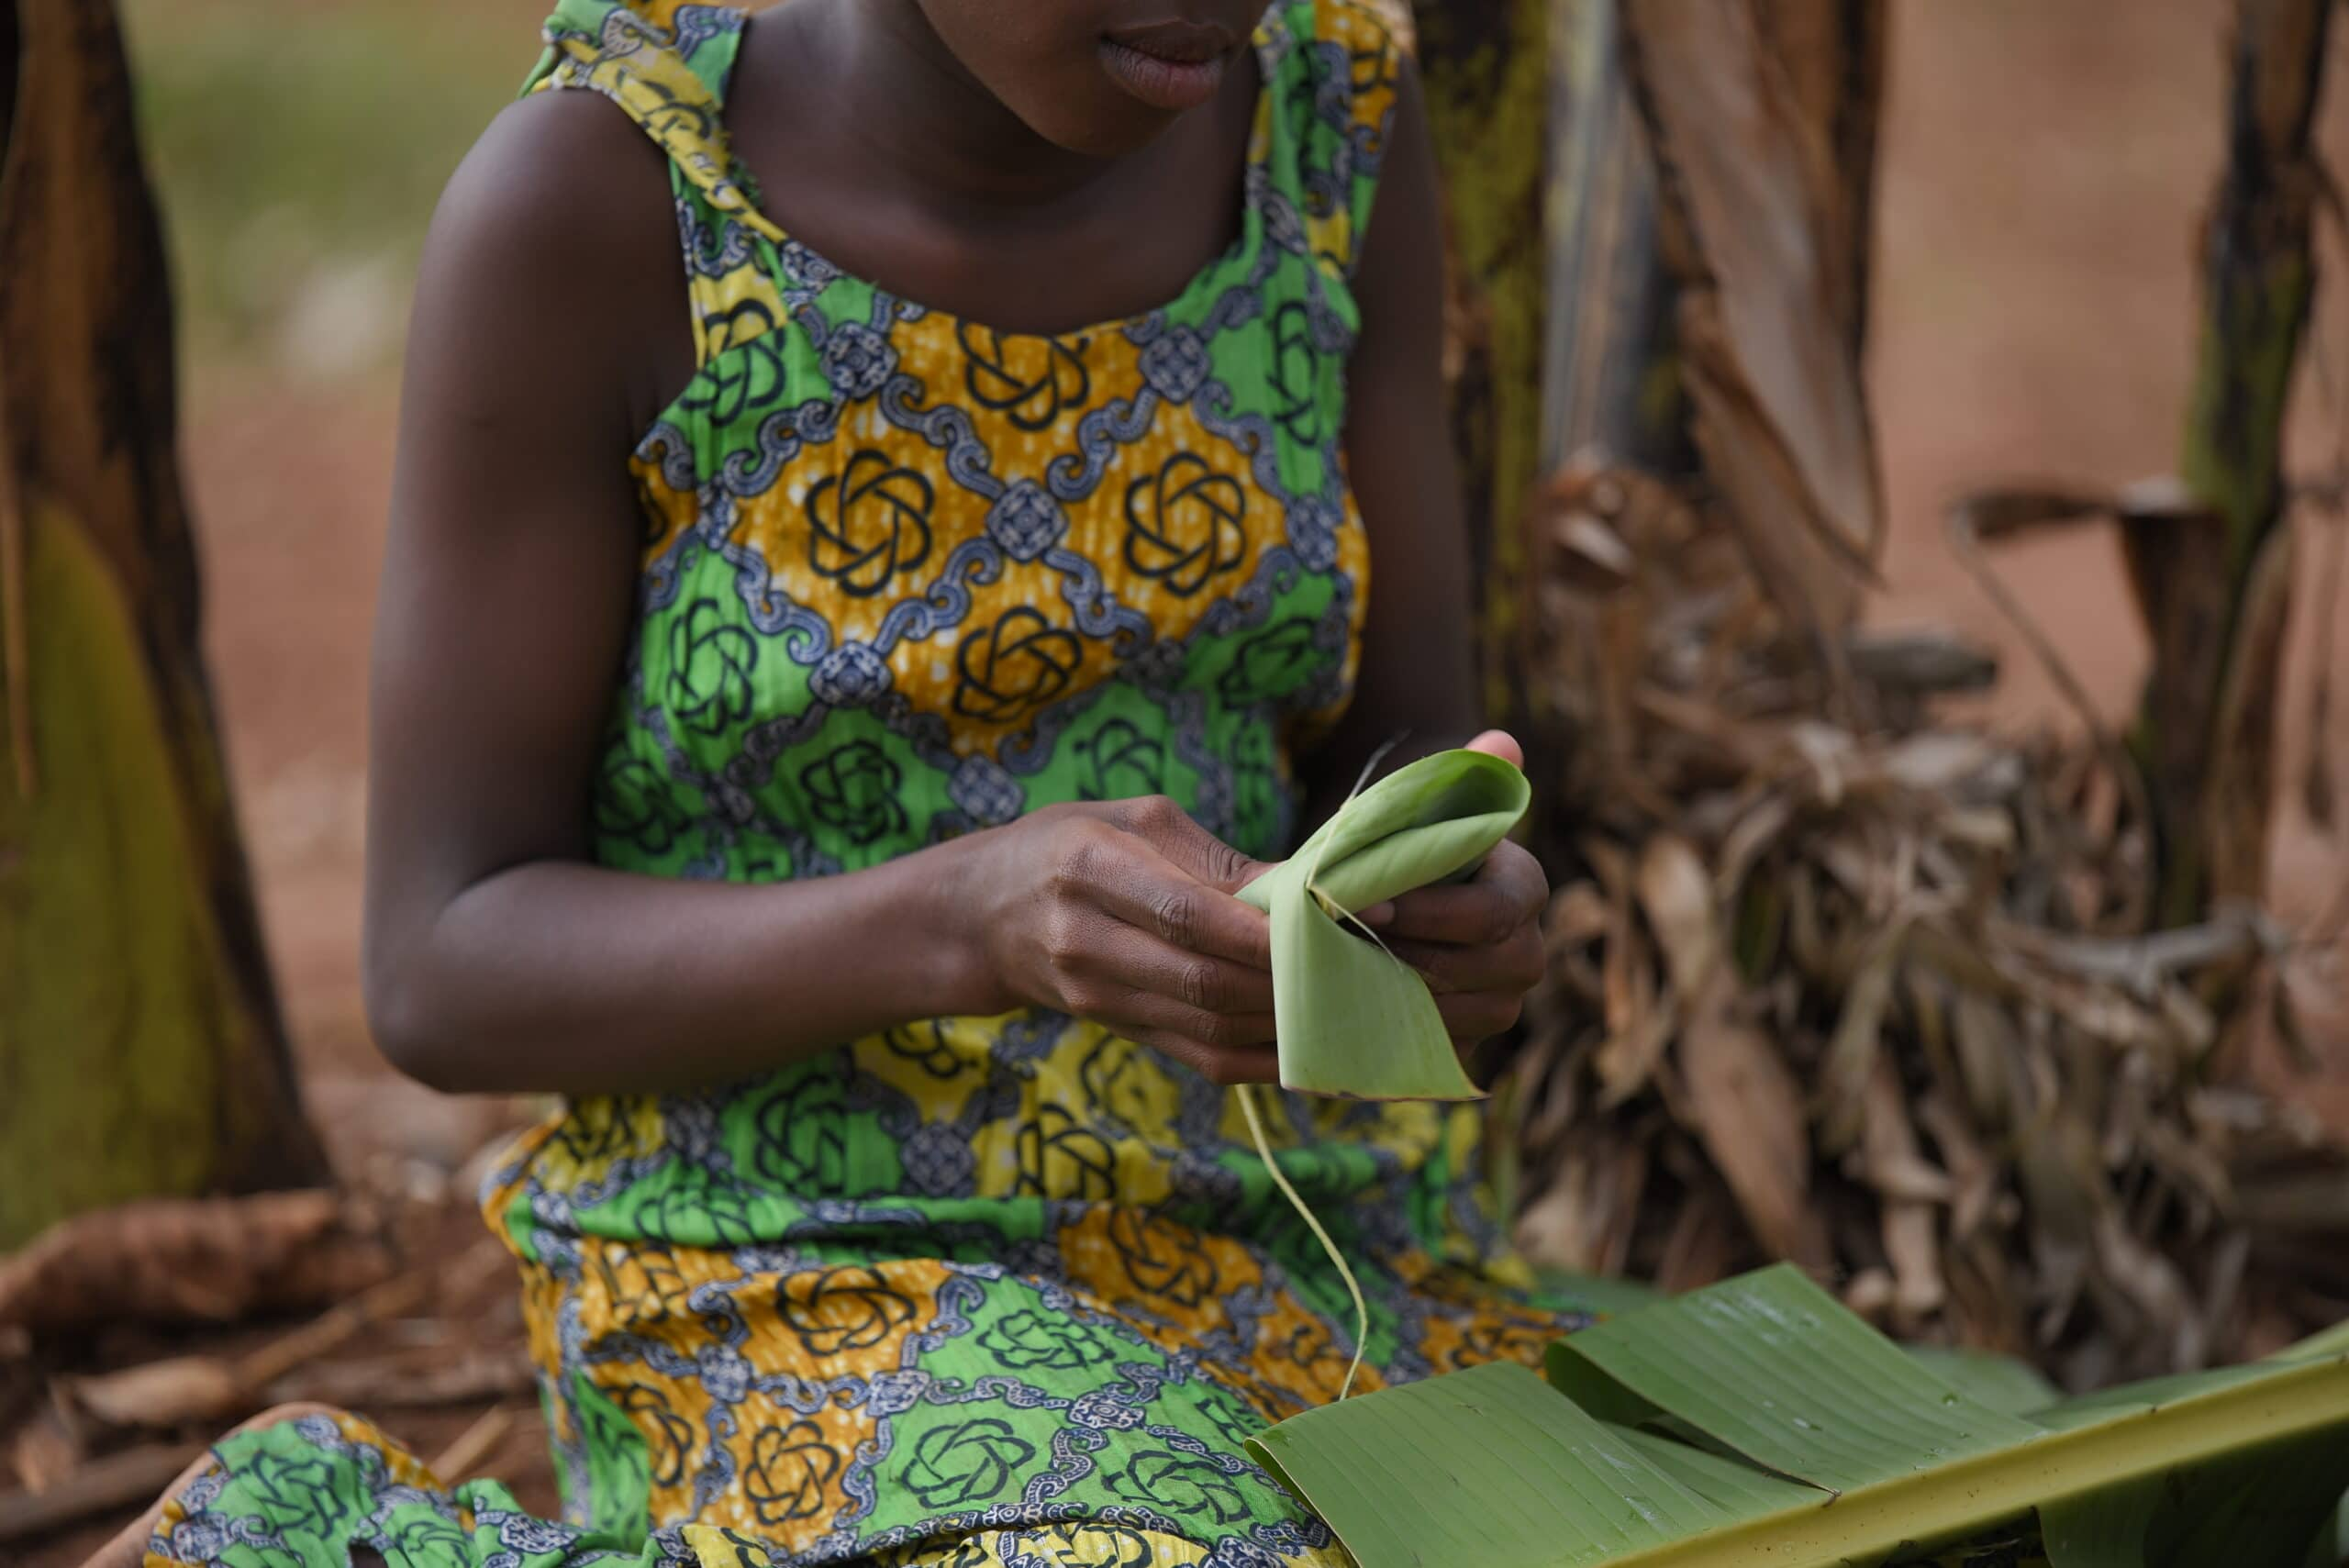 girl uses leaves instead of pads